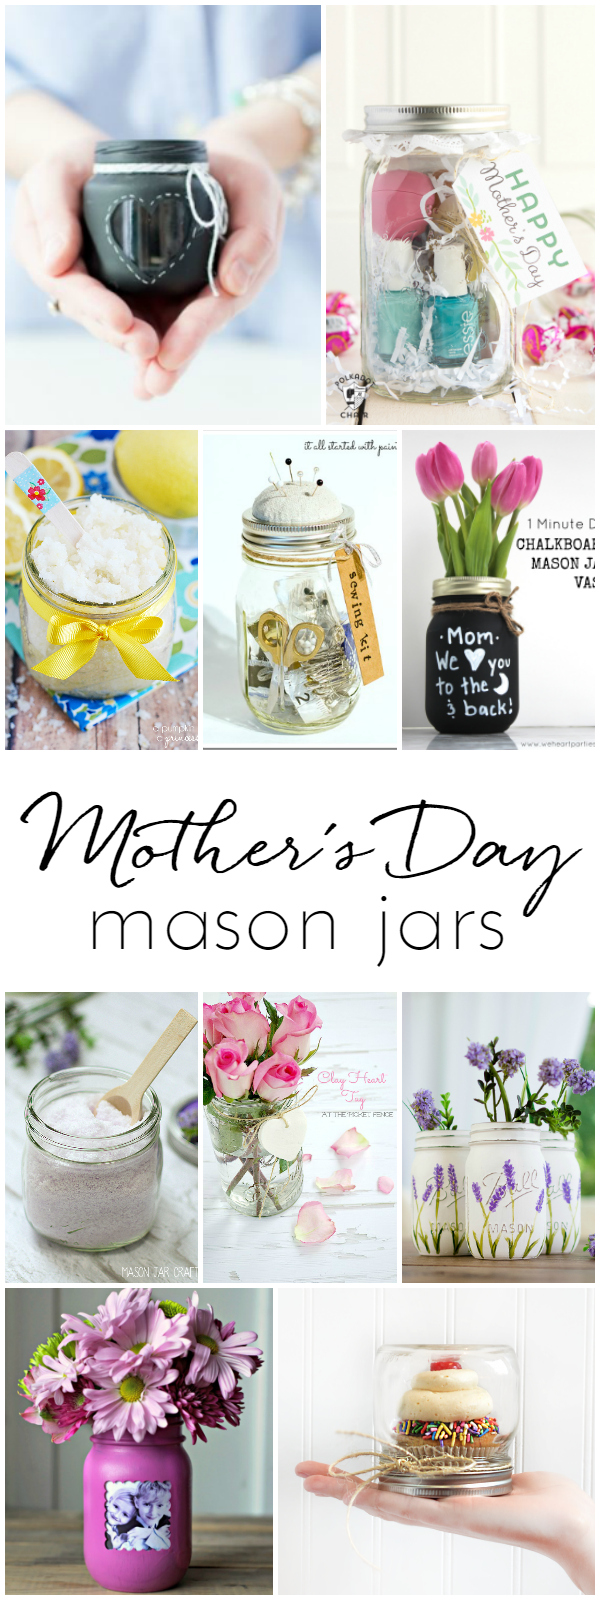 Mother's Day Gift Ideas in Mason Jars - Homemade Gift Ideas for Mother's Day - Mason Jar Gift Ideas @masonjarcraftslove.com